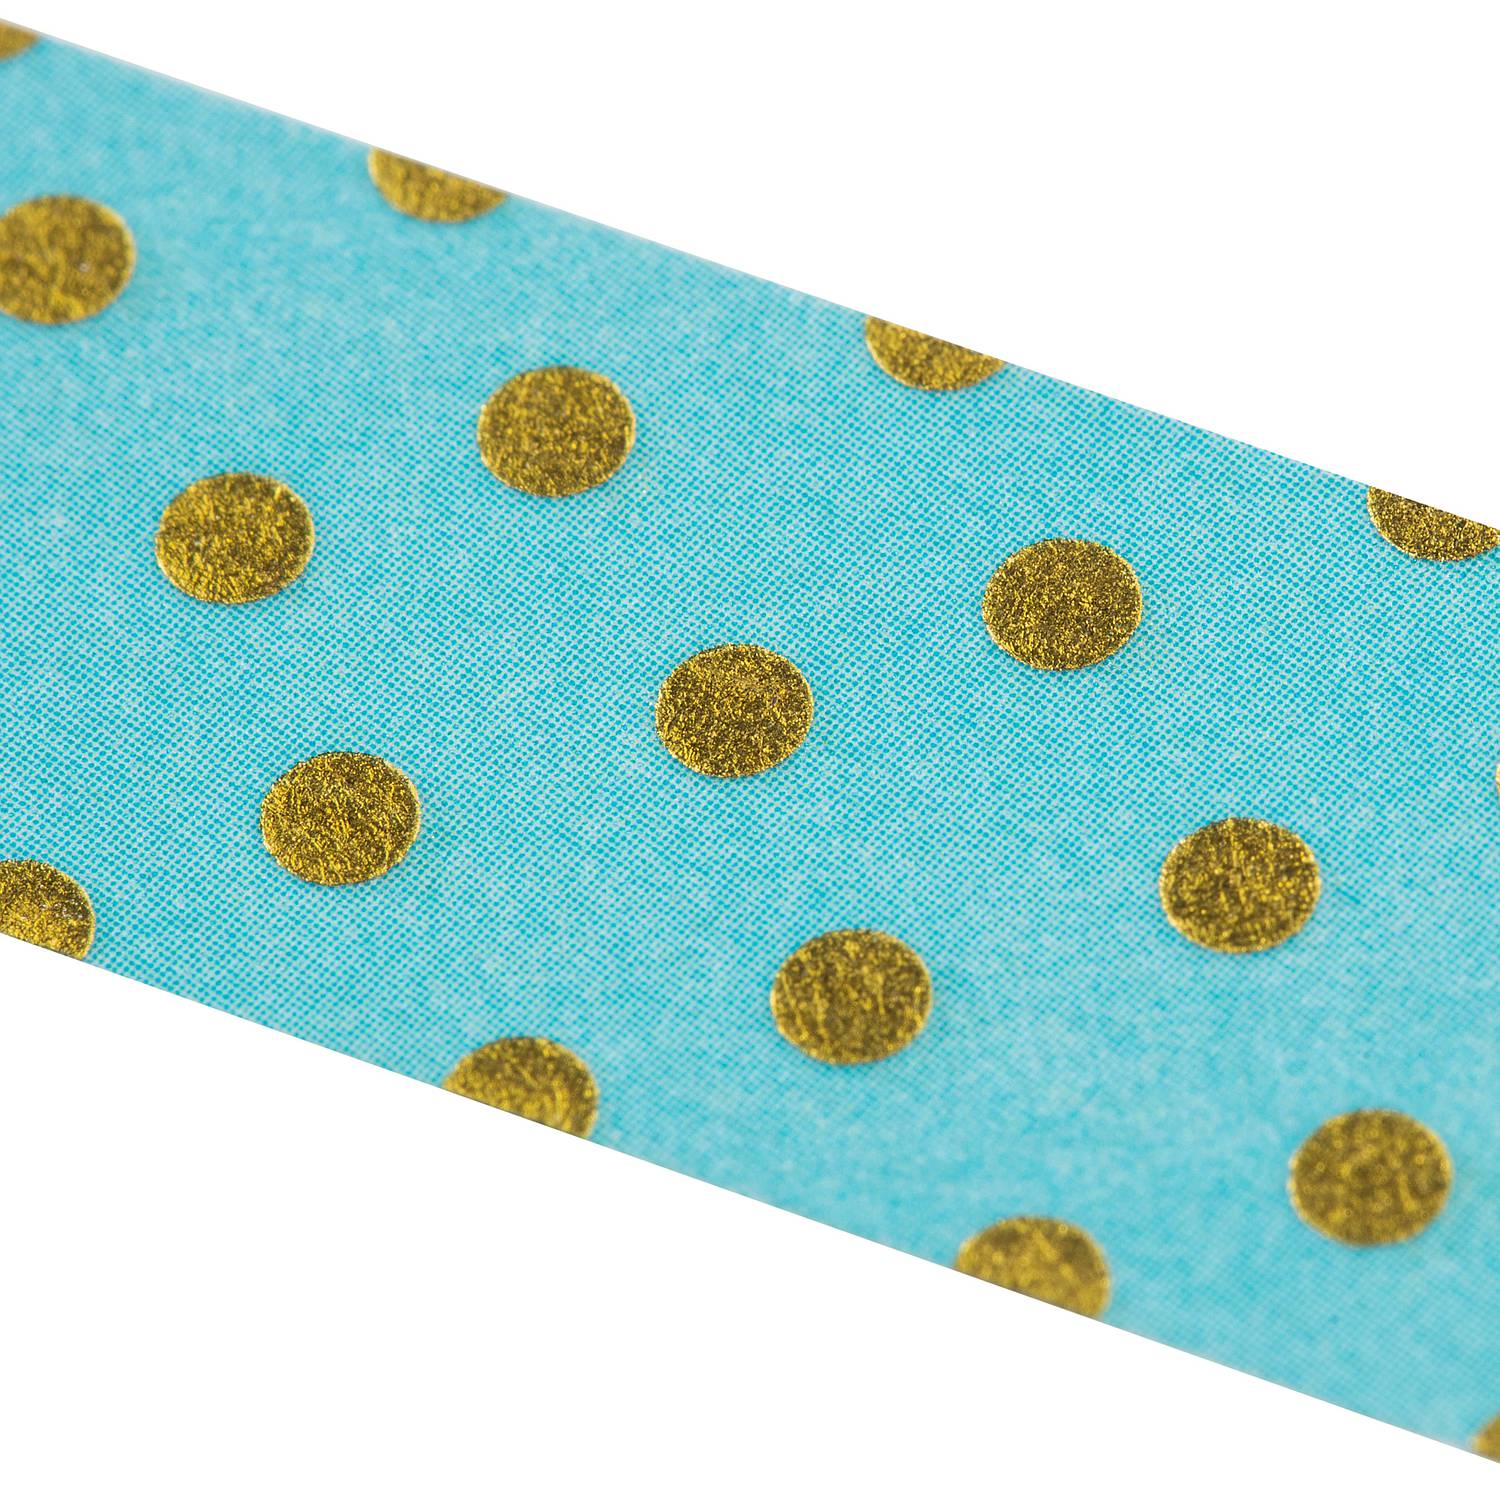 Washi Tape - Goldtupfen blau